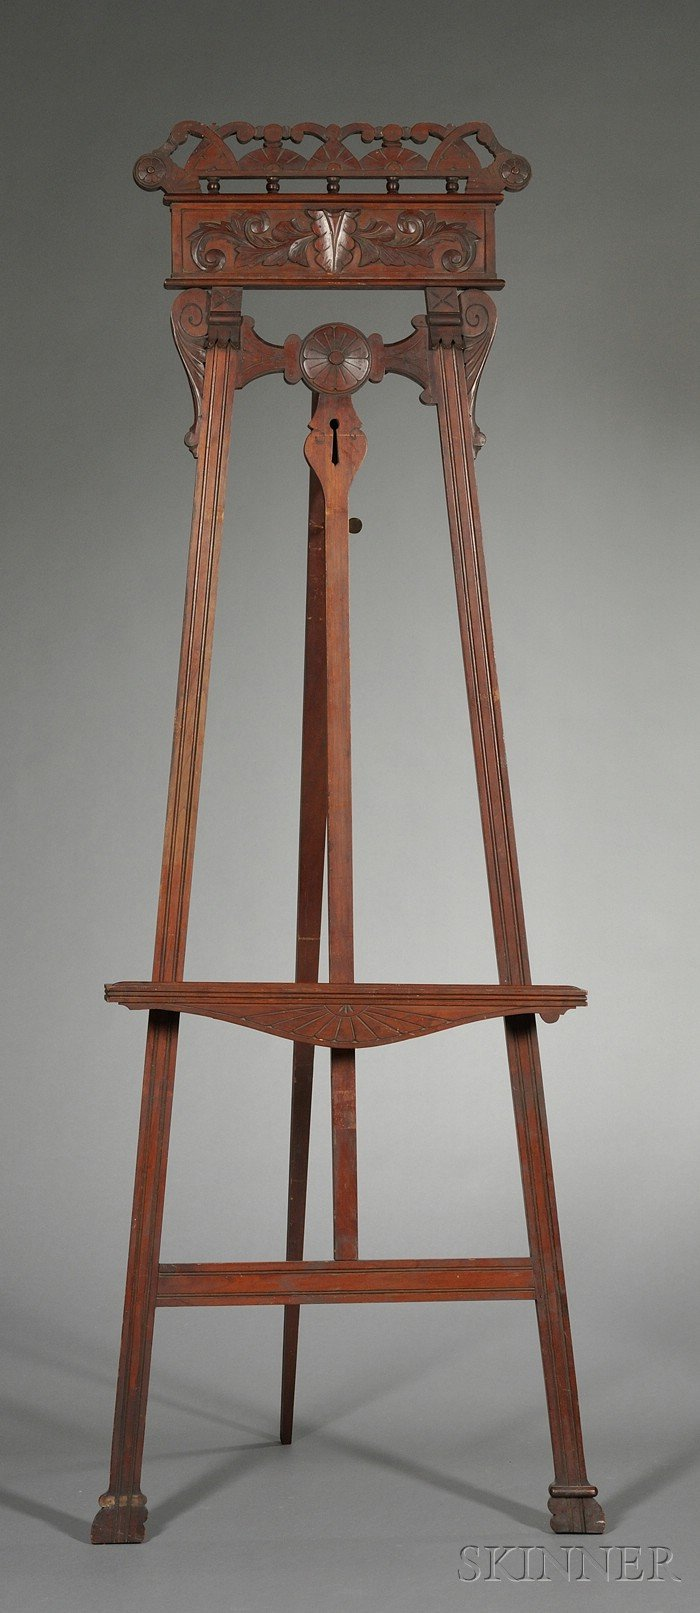 Renaissance Revival Carved Beechwood Painting Easel